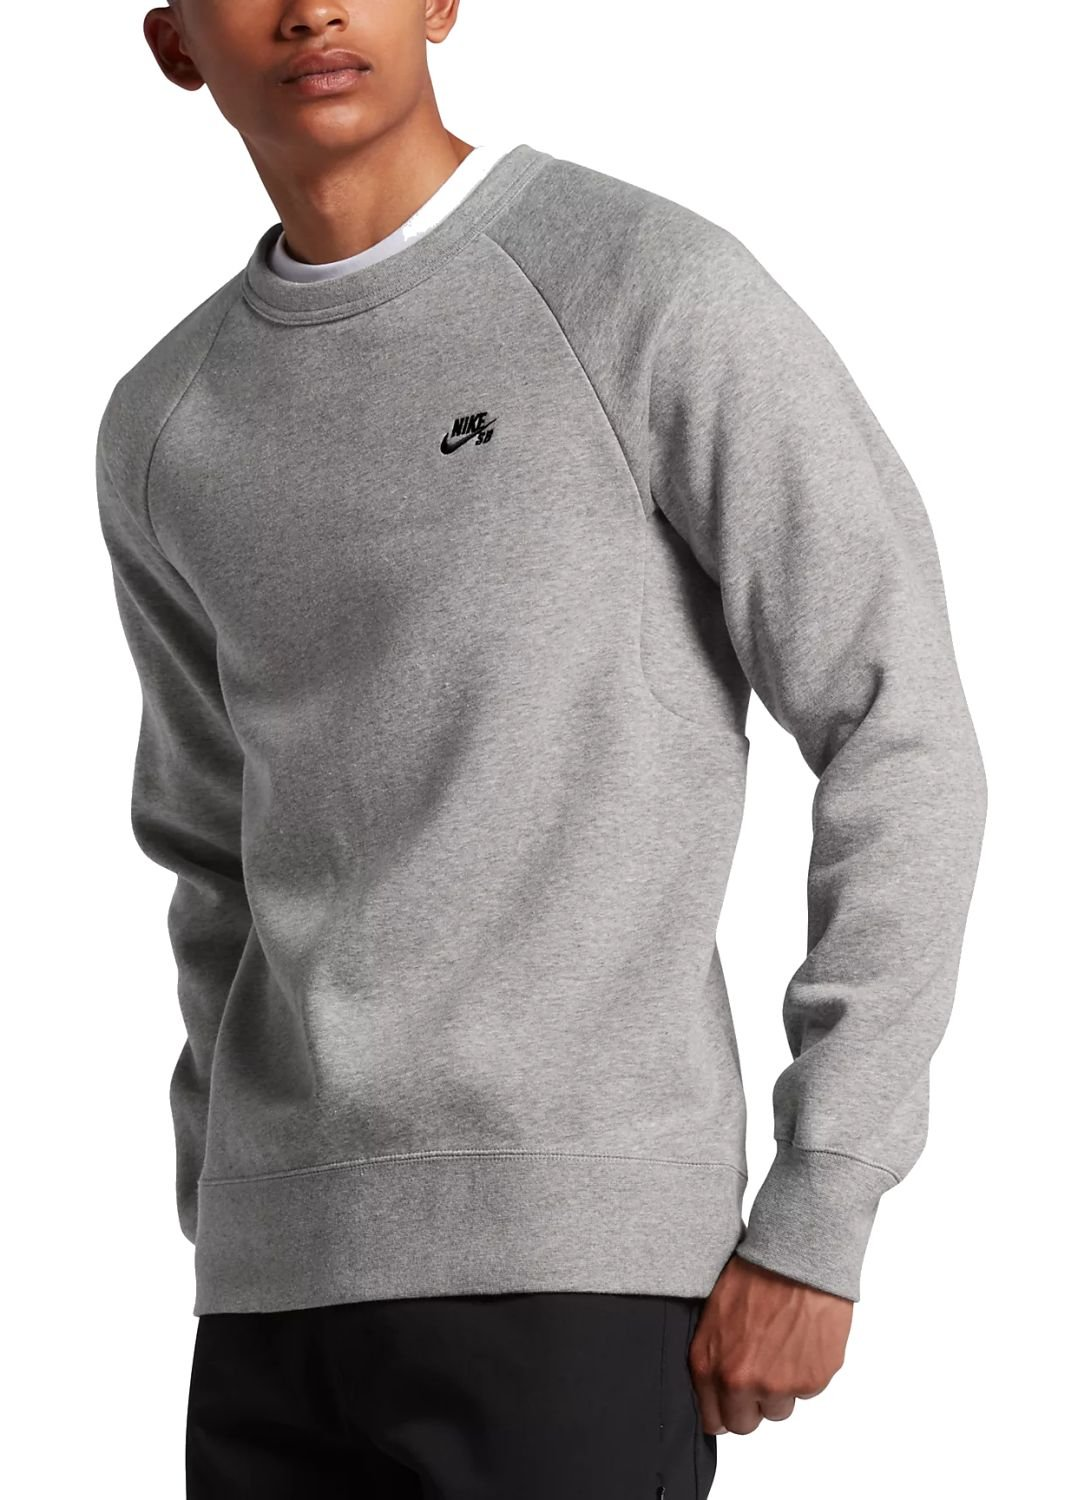 Nike SB ICON CREW FLEECE Long sleeved T shirt for Men, Size